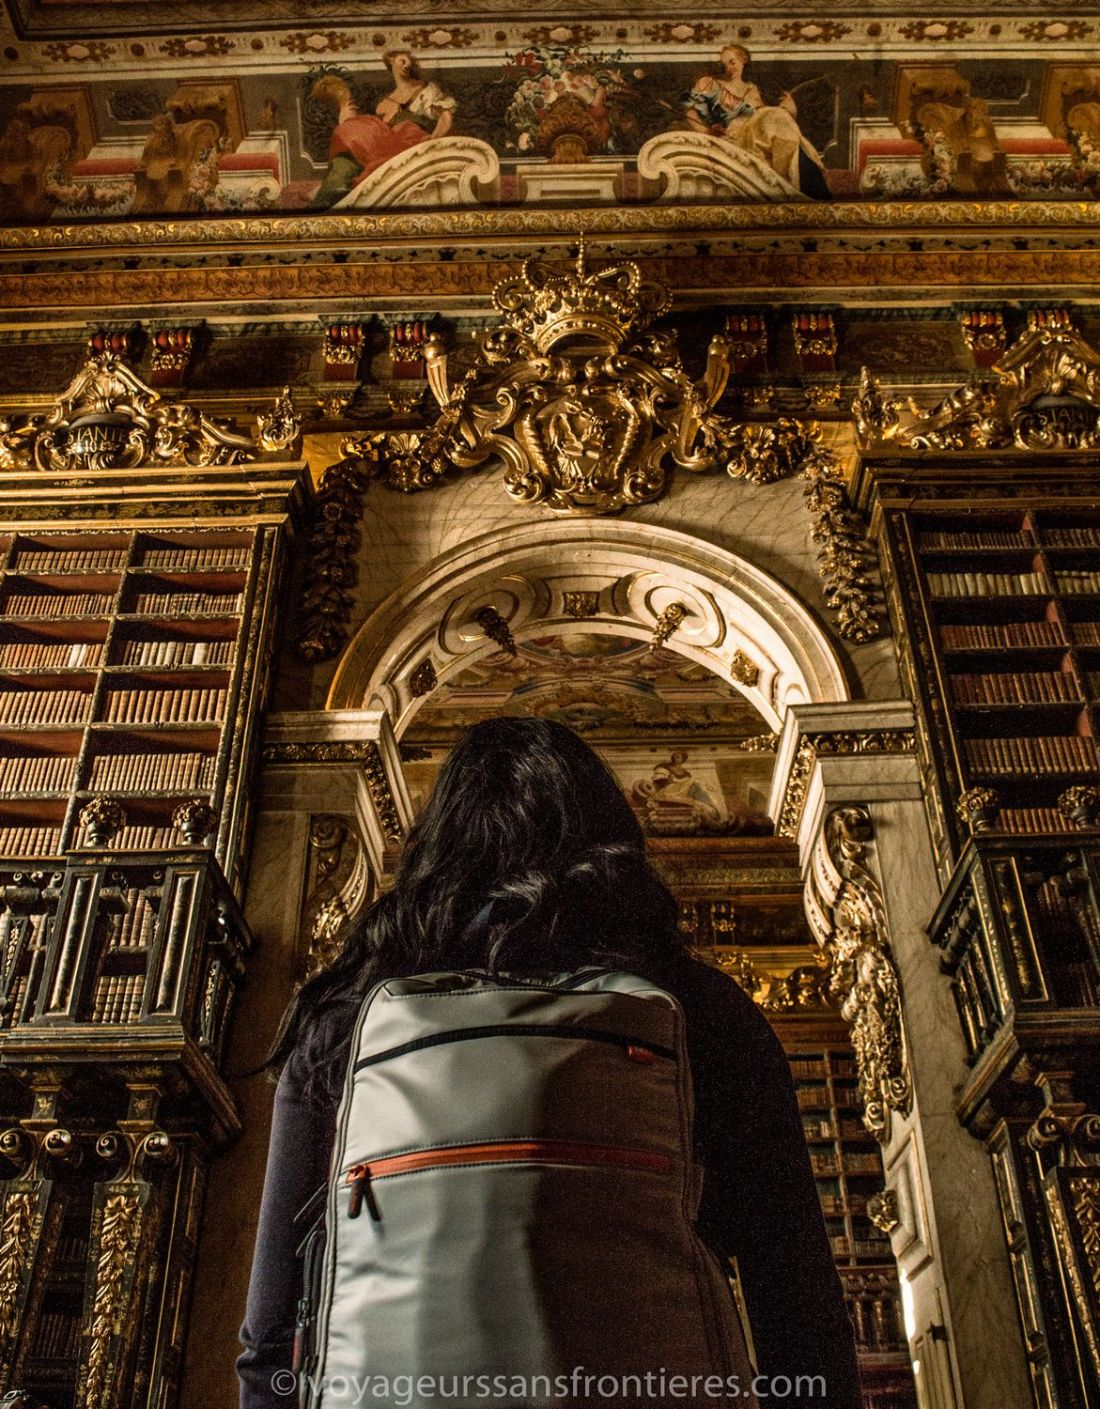 Nath in the Joanina library of the University of Coimbra - Portugal